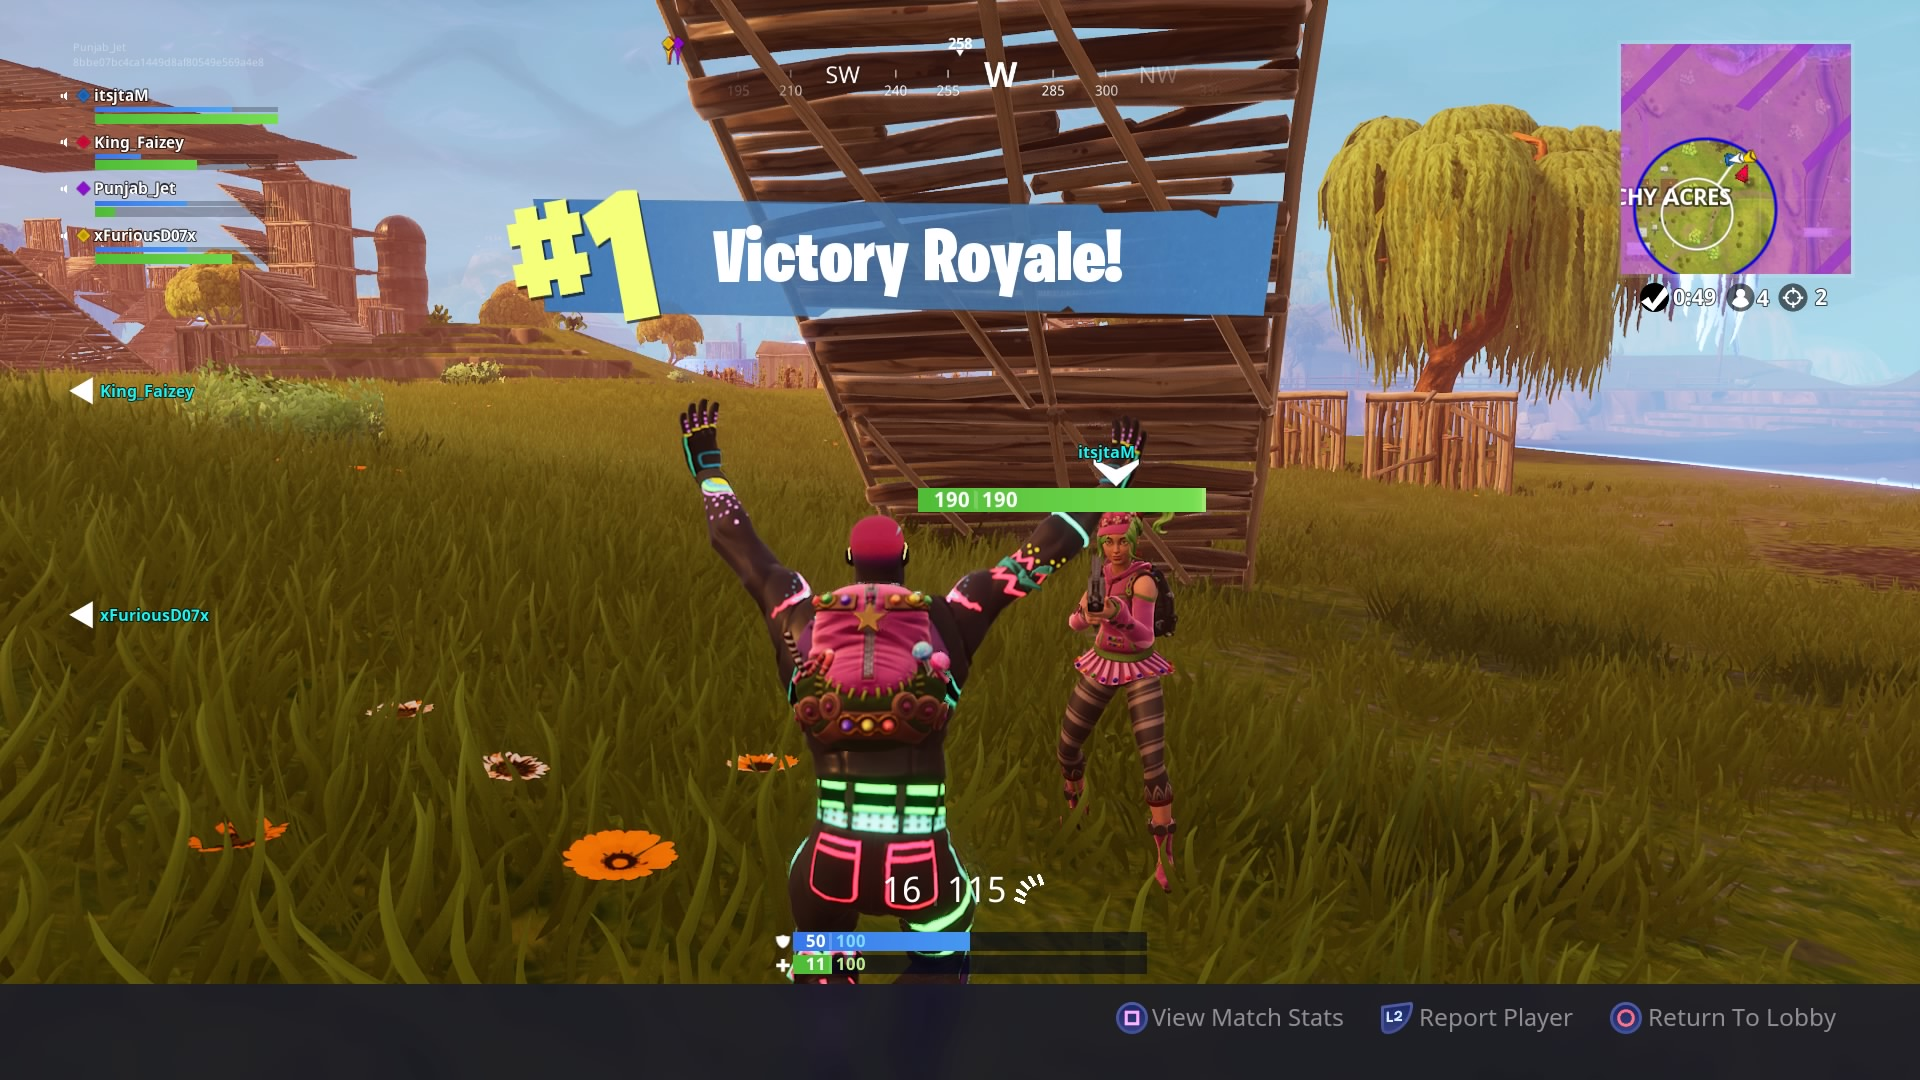 fortnite victory royale game wallpaper background 64478